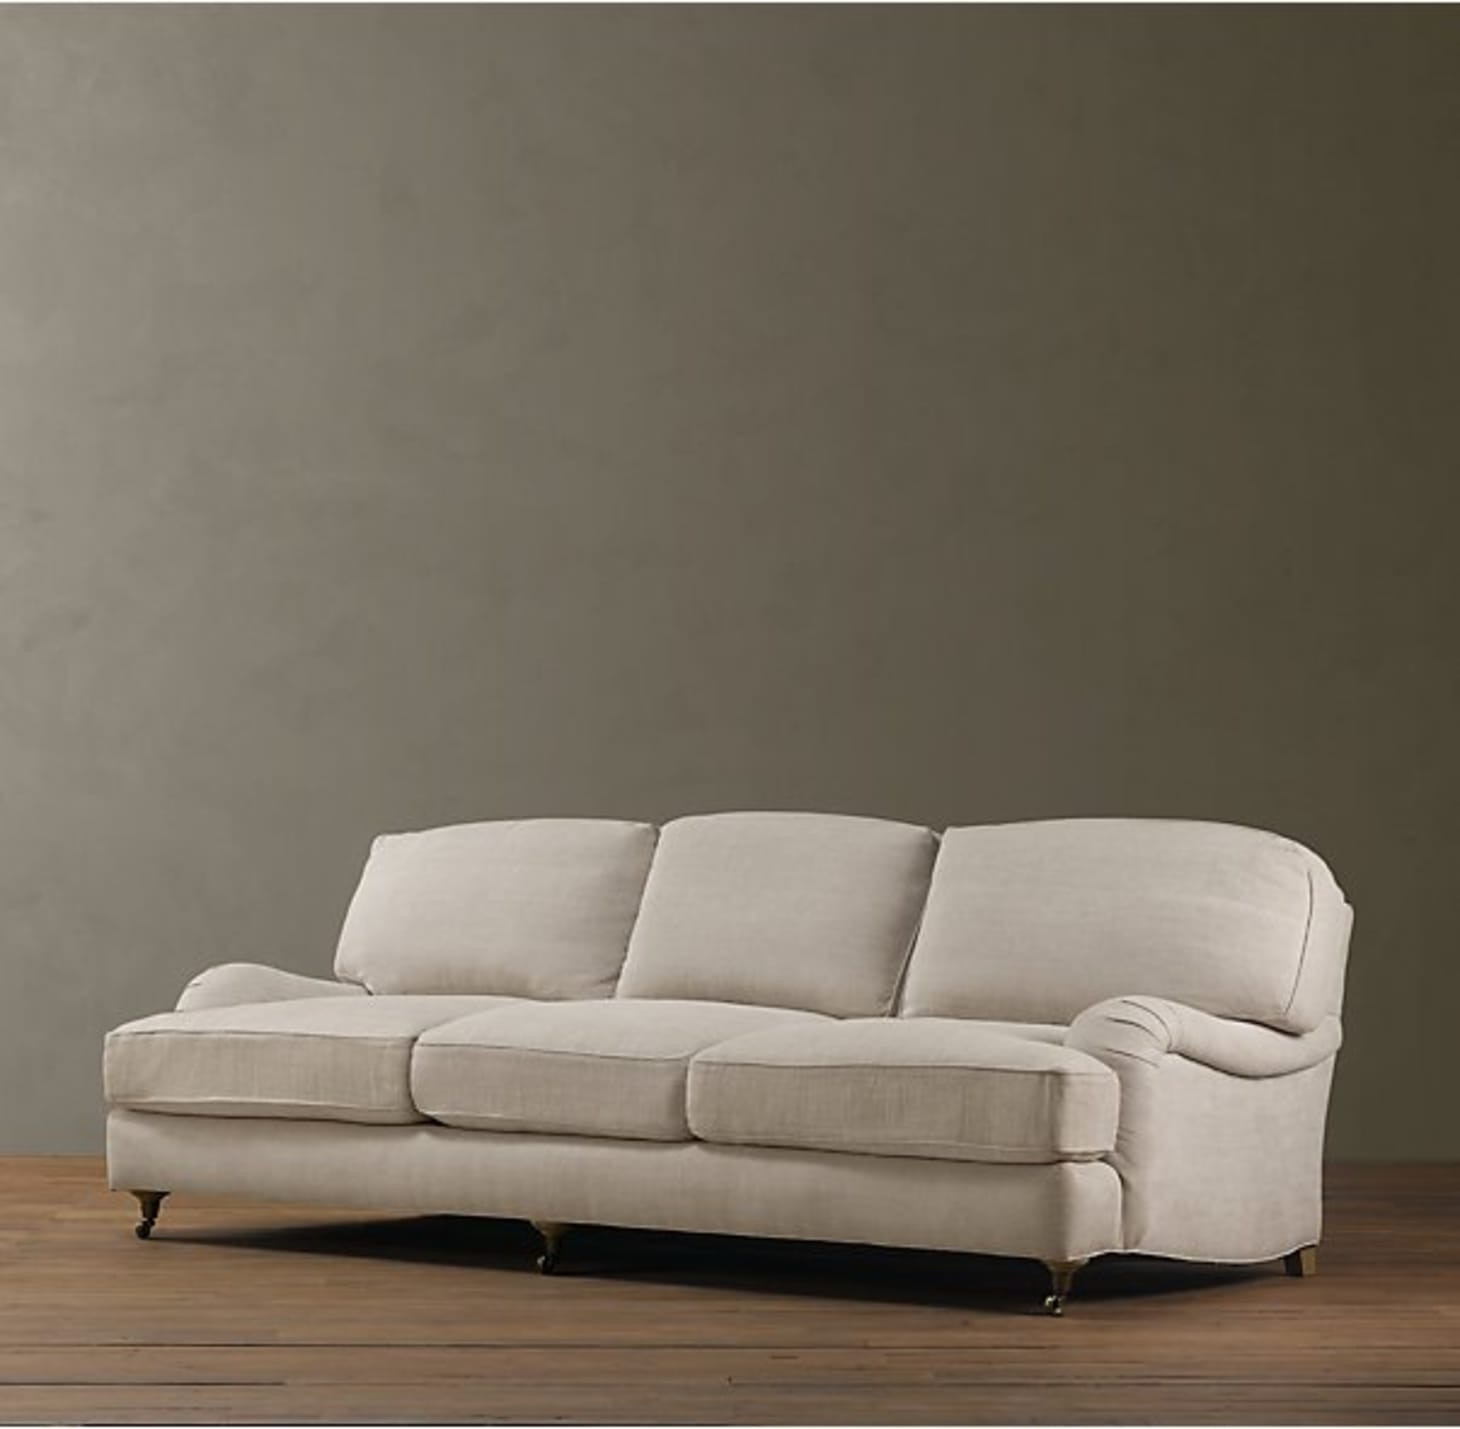 Brilliant Comfy Chic Best English Roll Arm Sofas Apartment Therapy Home Interior And Landscaping Ologienasavecom